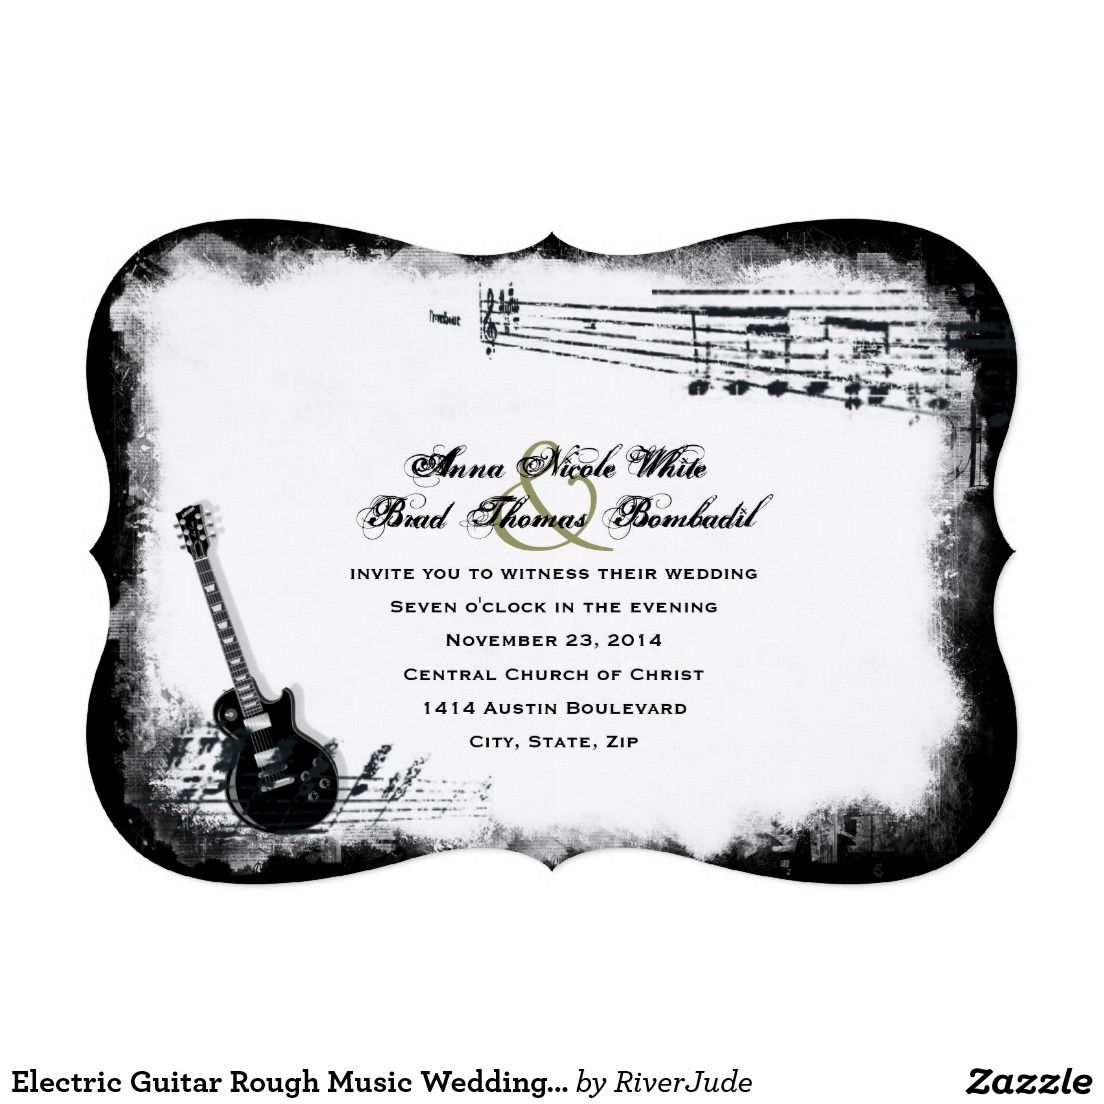 Electric Guitar Rough Music Wedding Invitation | Wedding Ideas ...